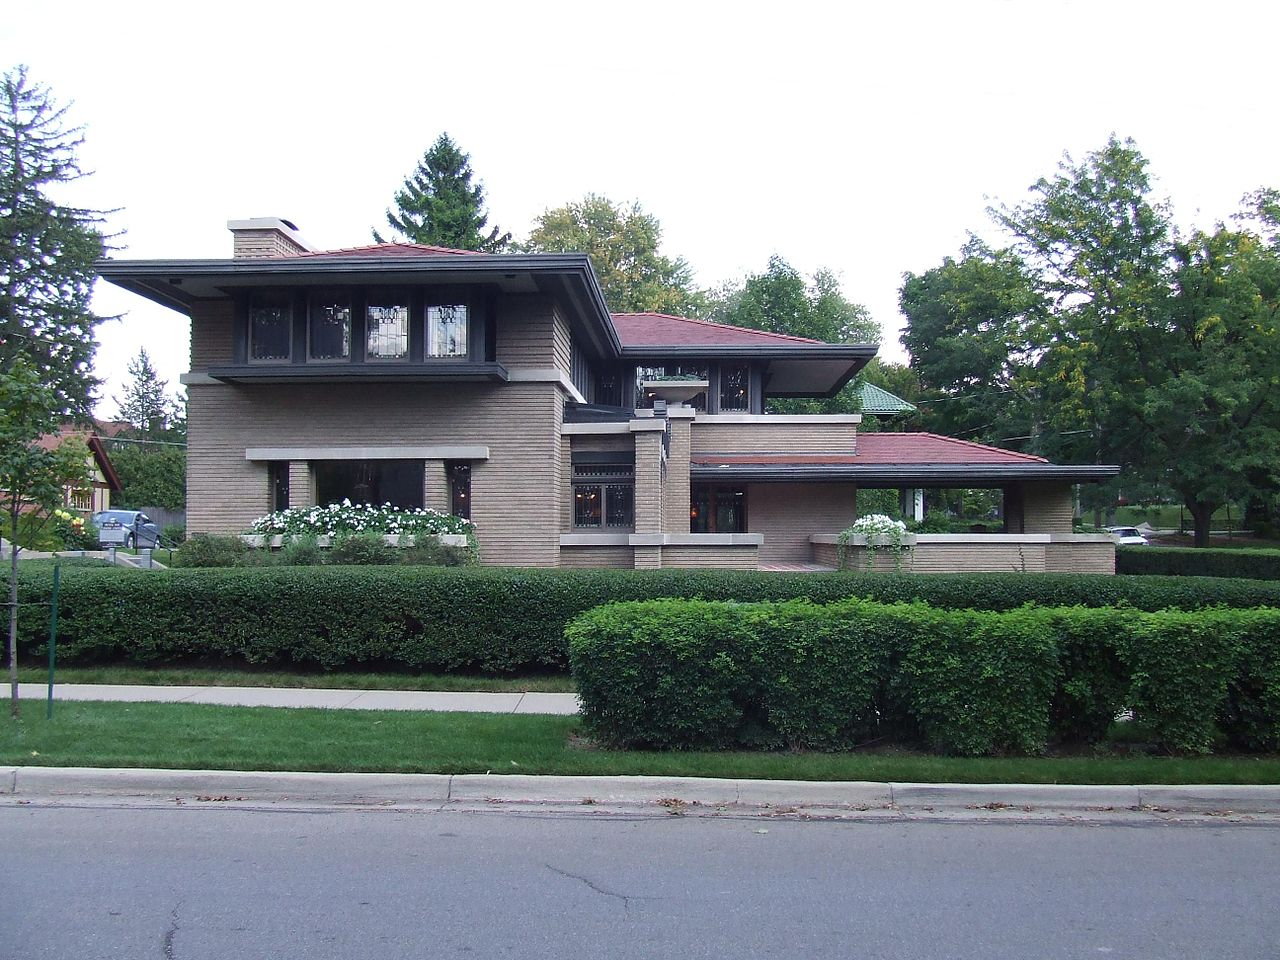 1280px-Meyer_May_House,_west_side,_2009.JPG